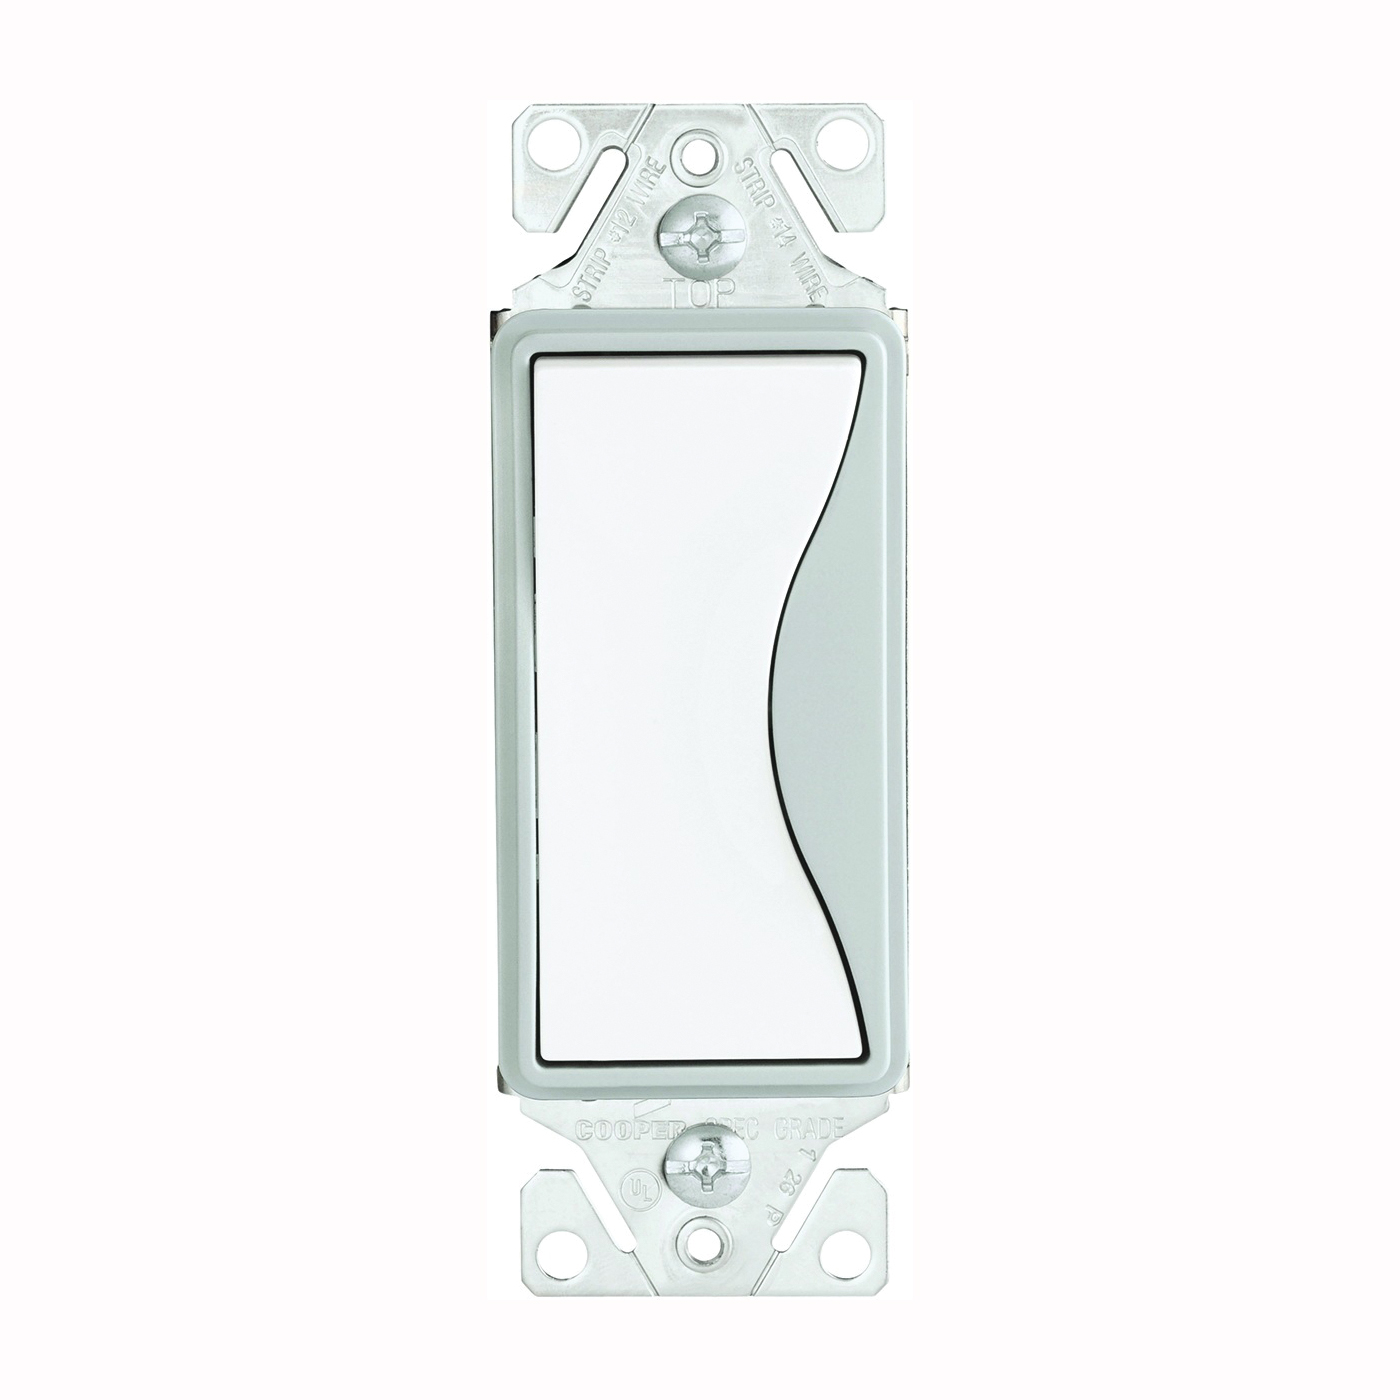 Picture of Eaton Wiring Devices ASPIRE 9501WS Rocker Switch, 15 A, 120/277 V, Single-Pole, Push-In Terminal, White